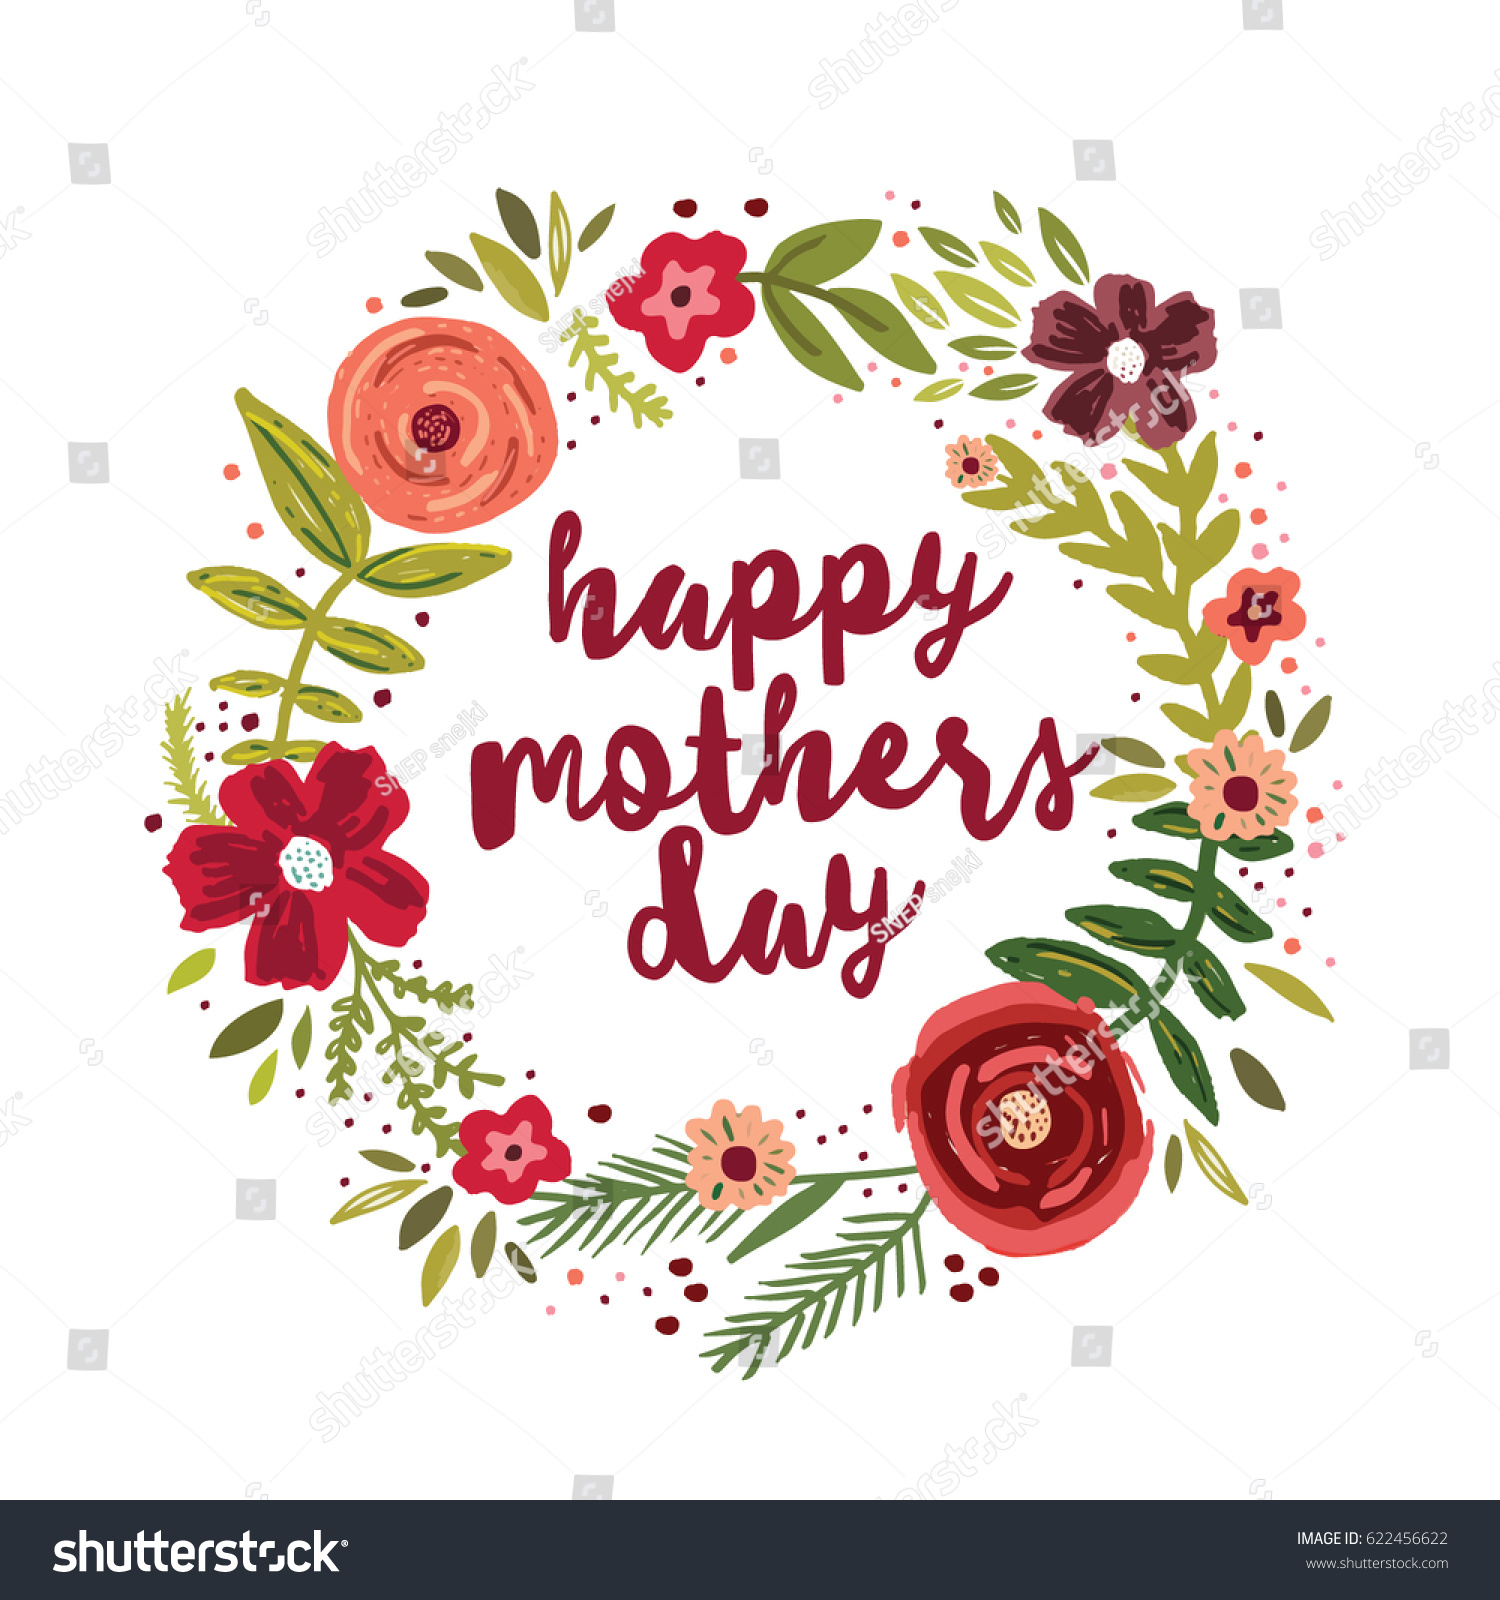 Happy Mothers Day Greetings Card Stock Vector Royalty Free